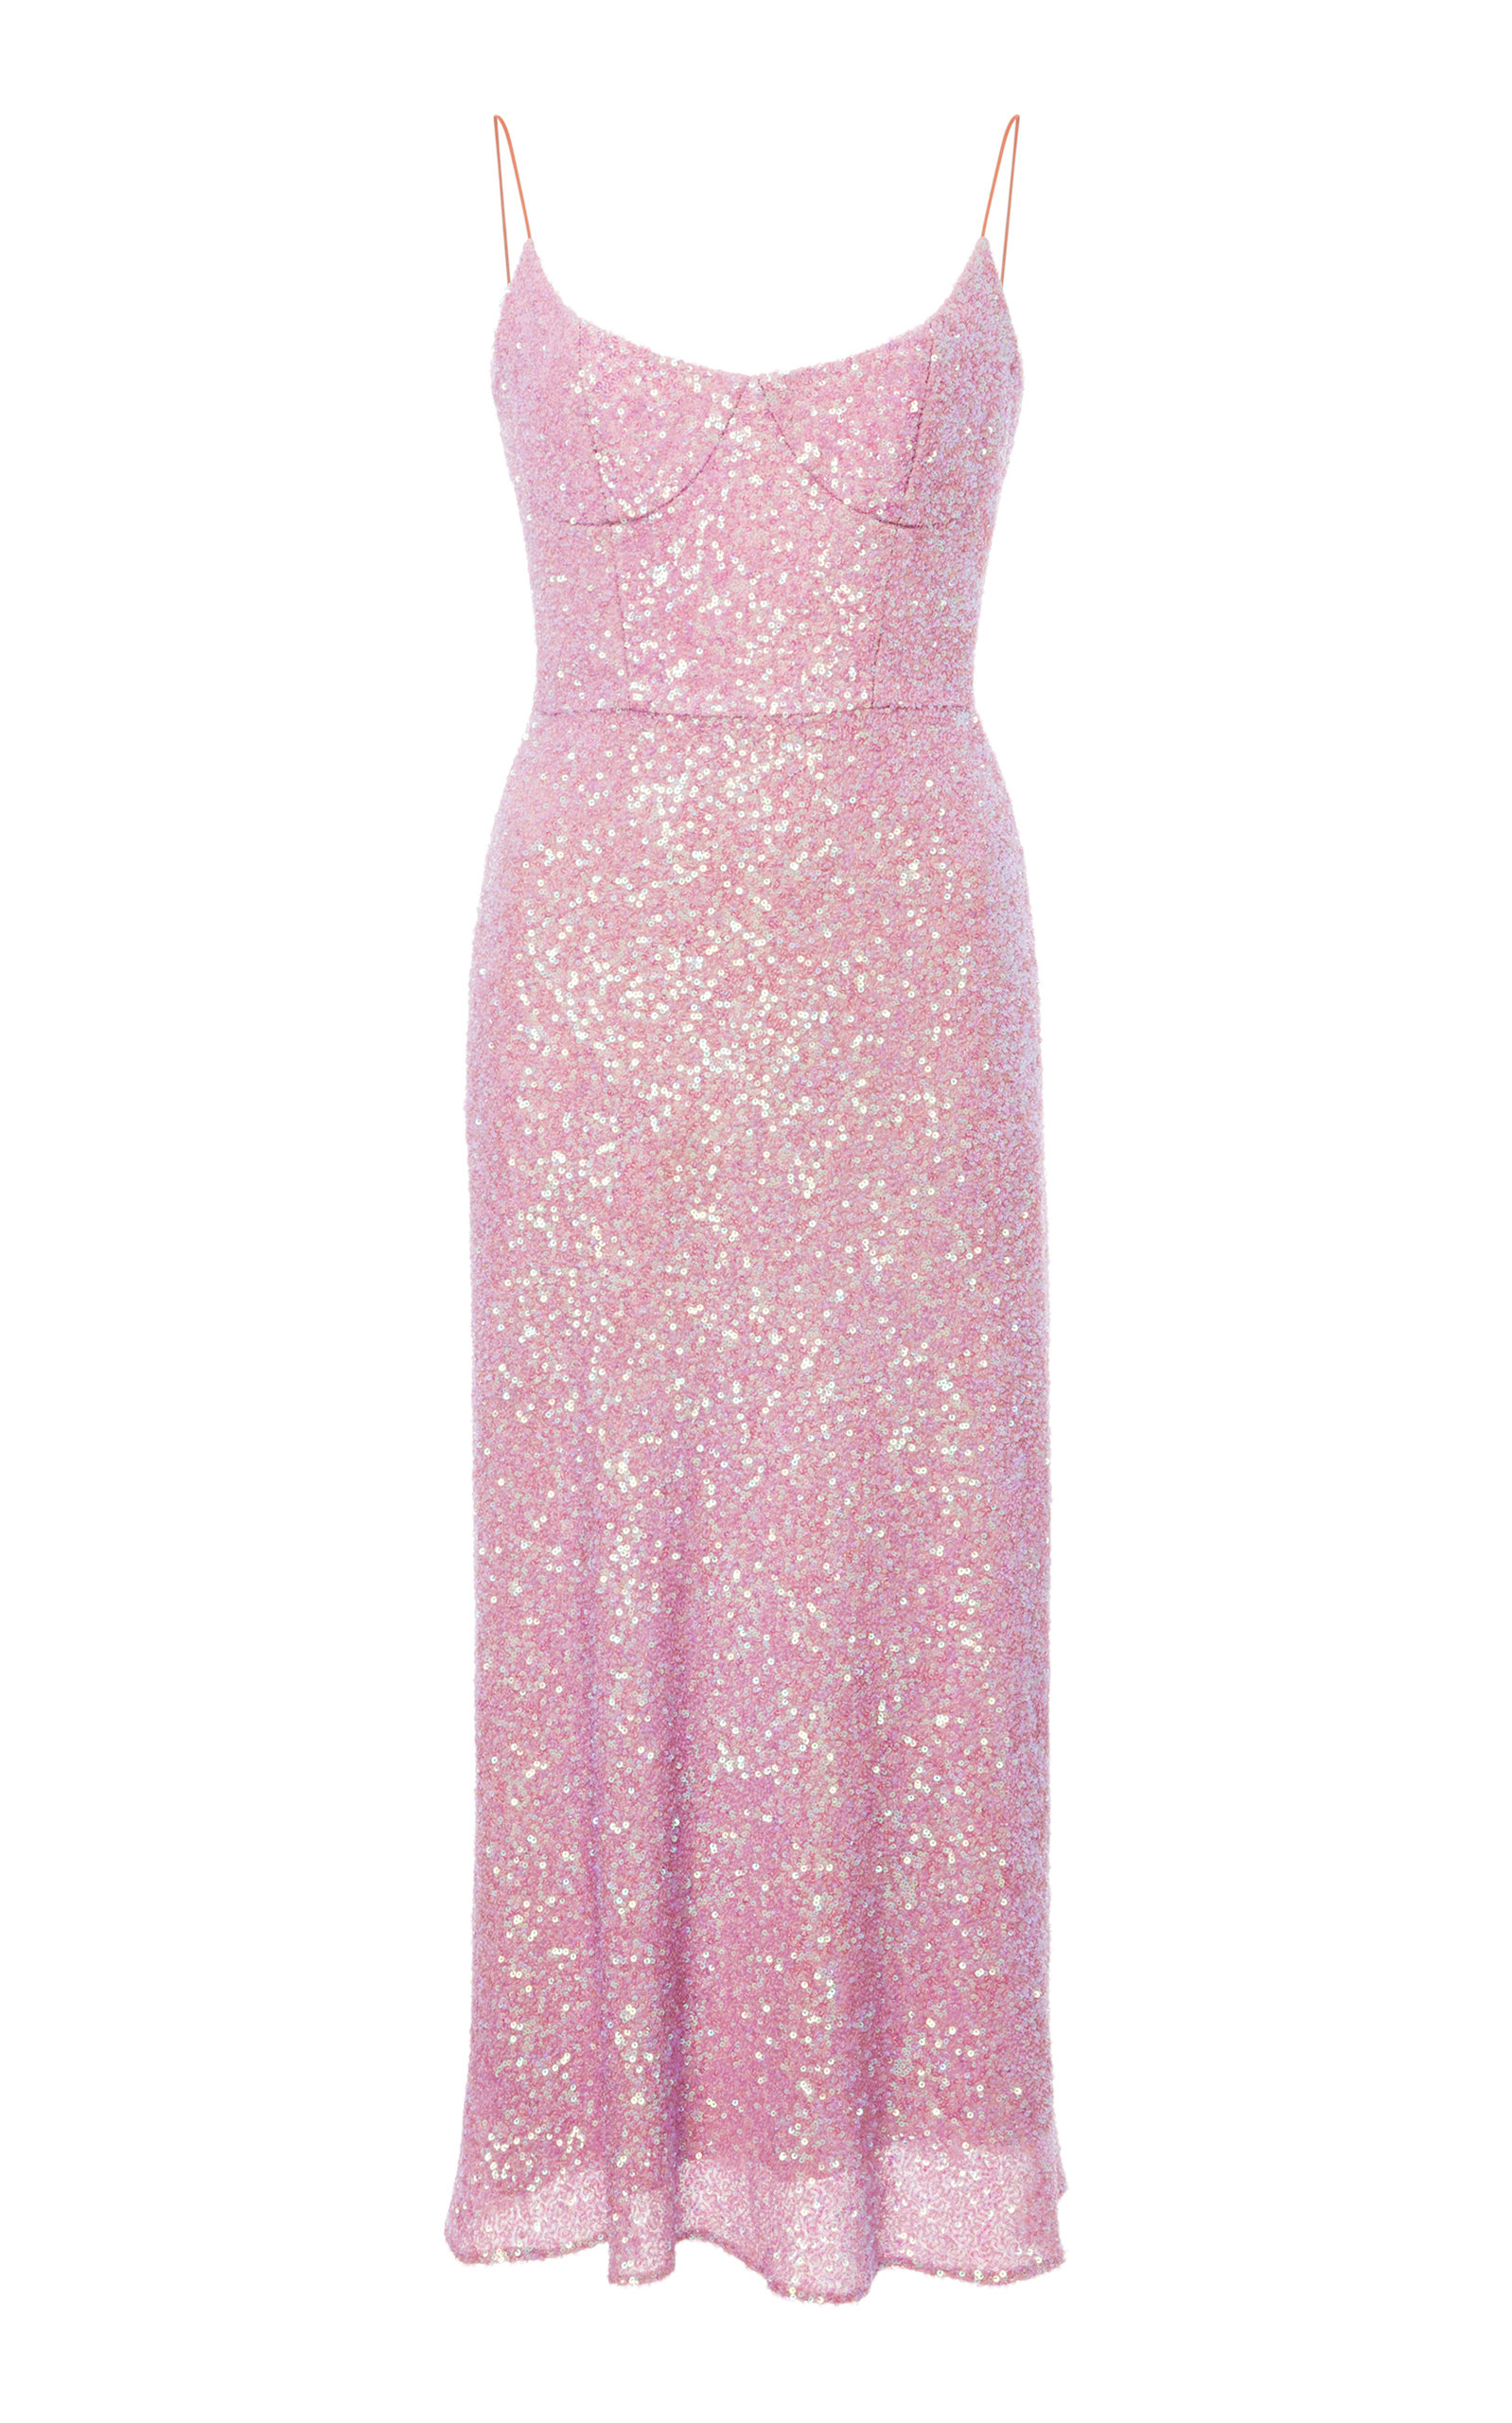 MARKARIAN HEART OF GLASS SEQUIN SILK MIDI DRESS